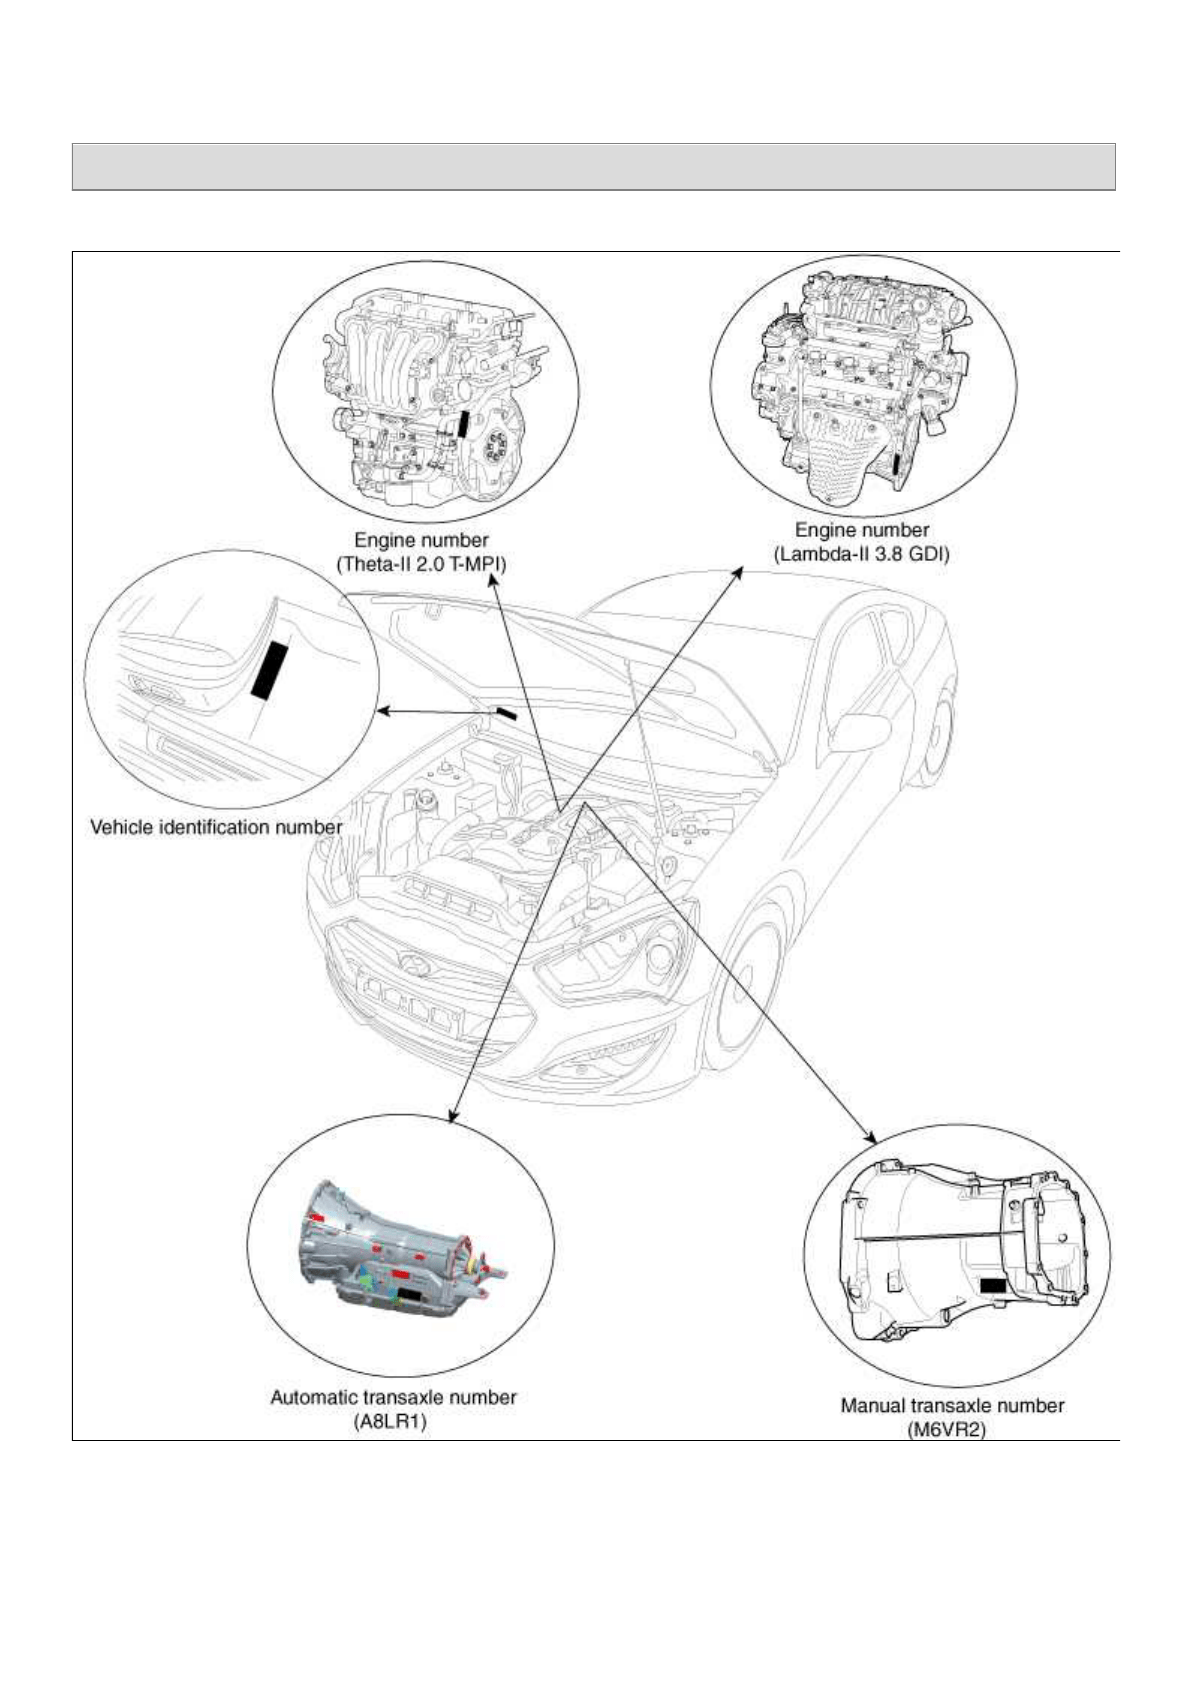 Hyundai Genesis 2013 Workshop Manual 3.8 GDI PDF